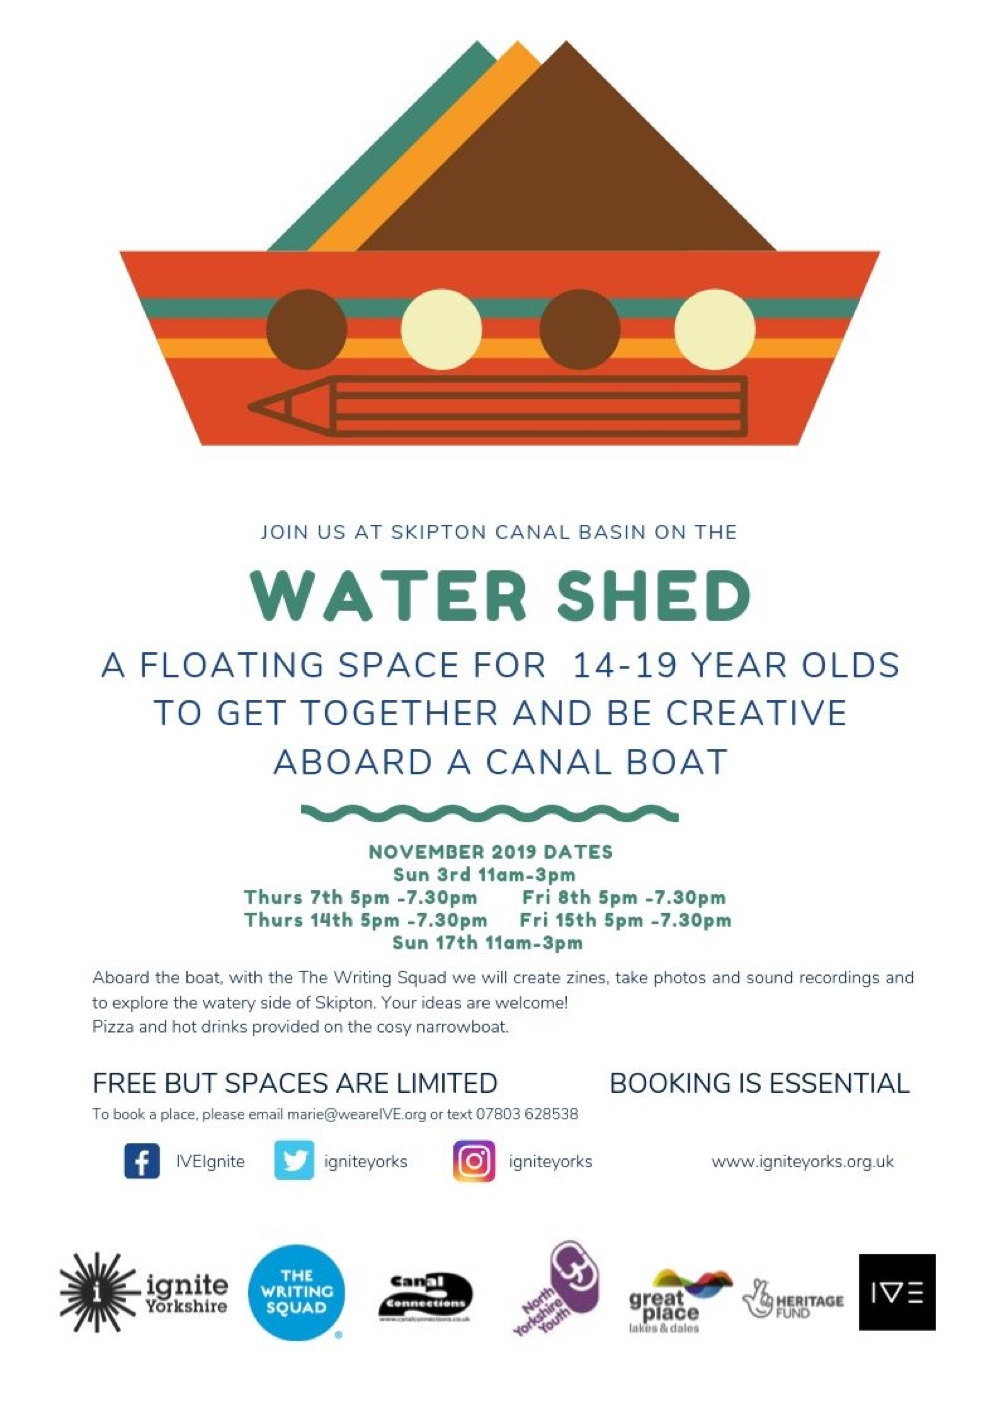 Join Us On The Water Shed